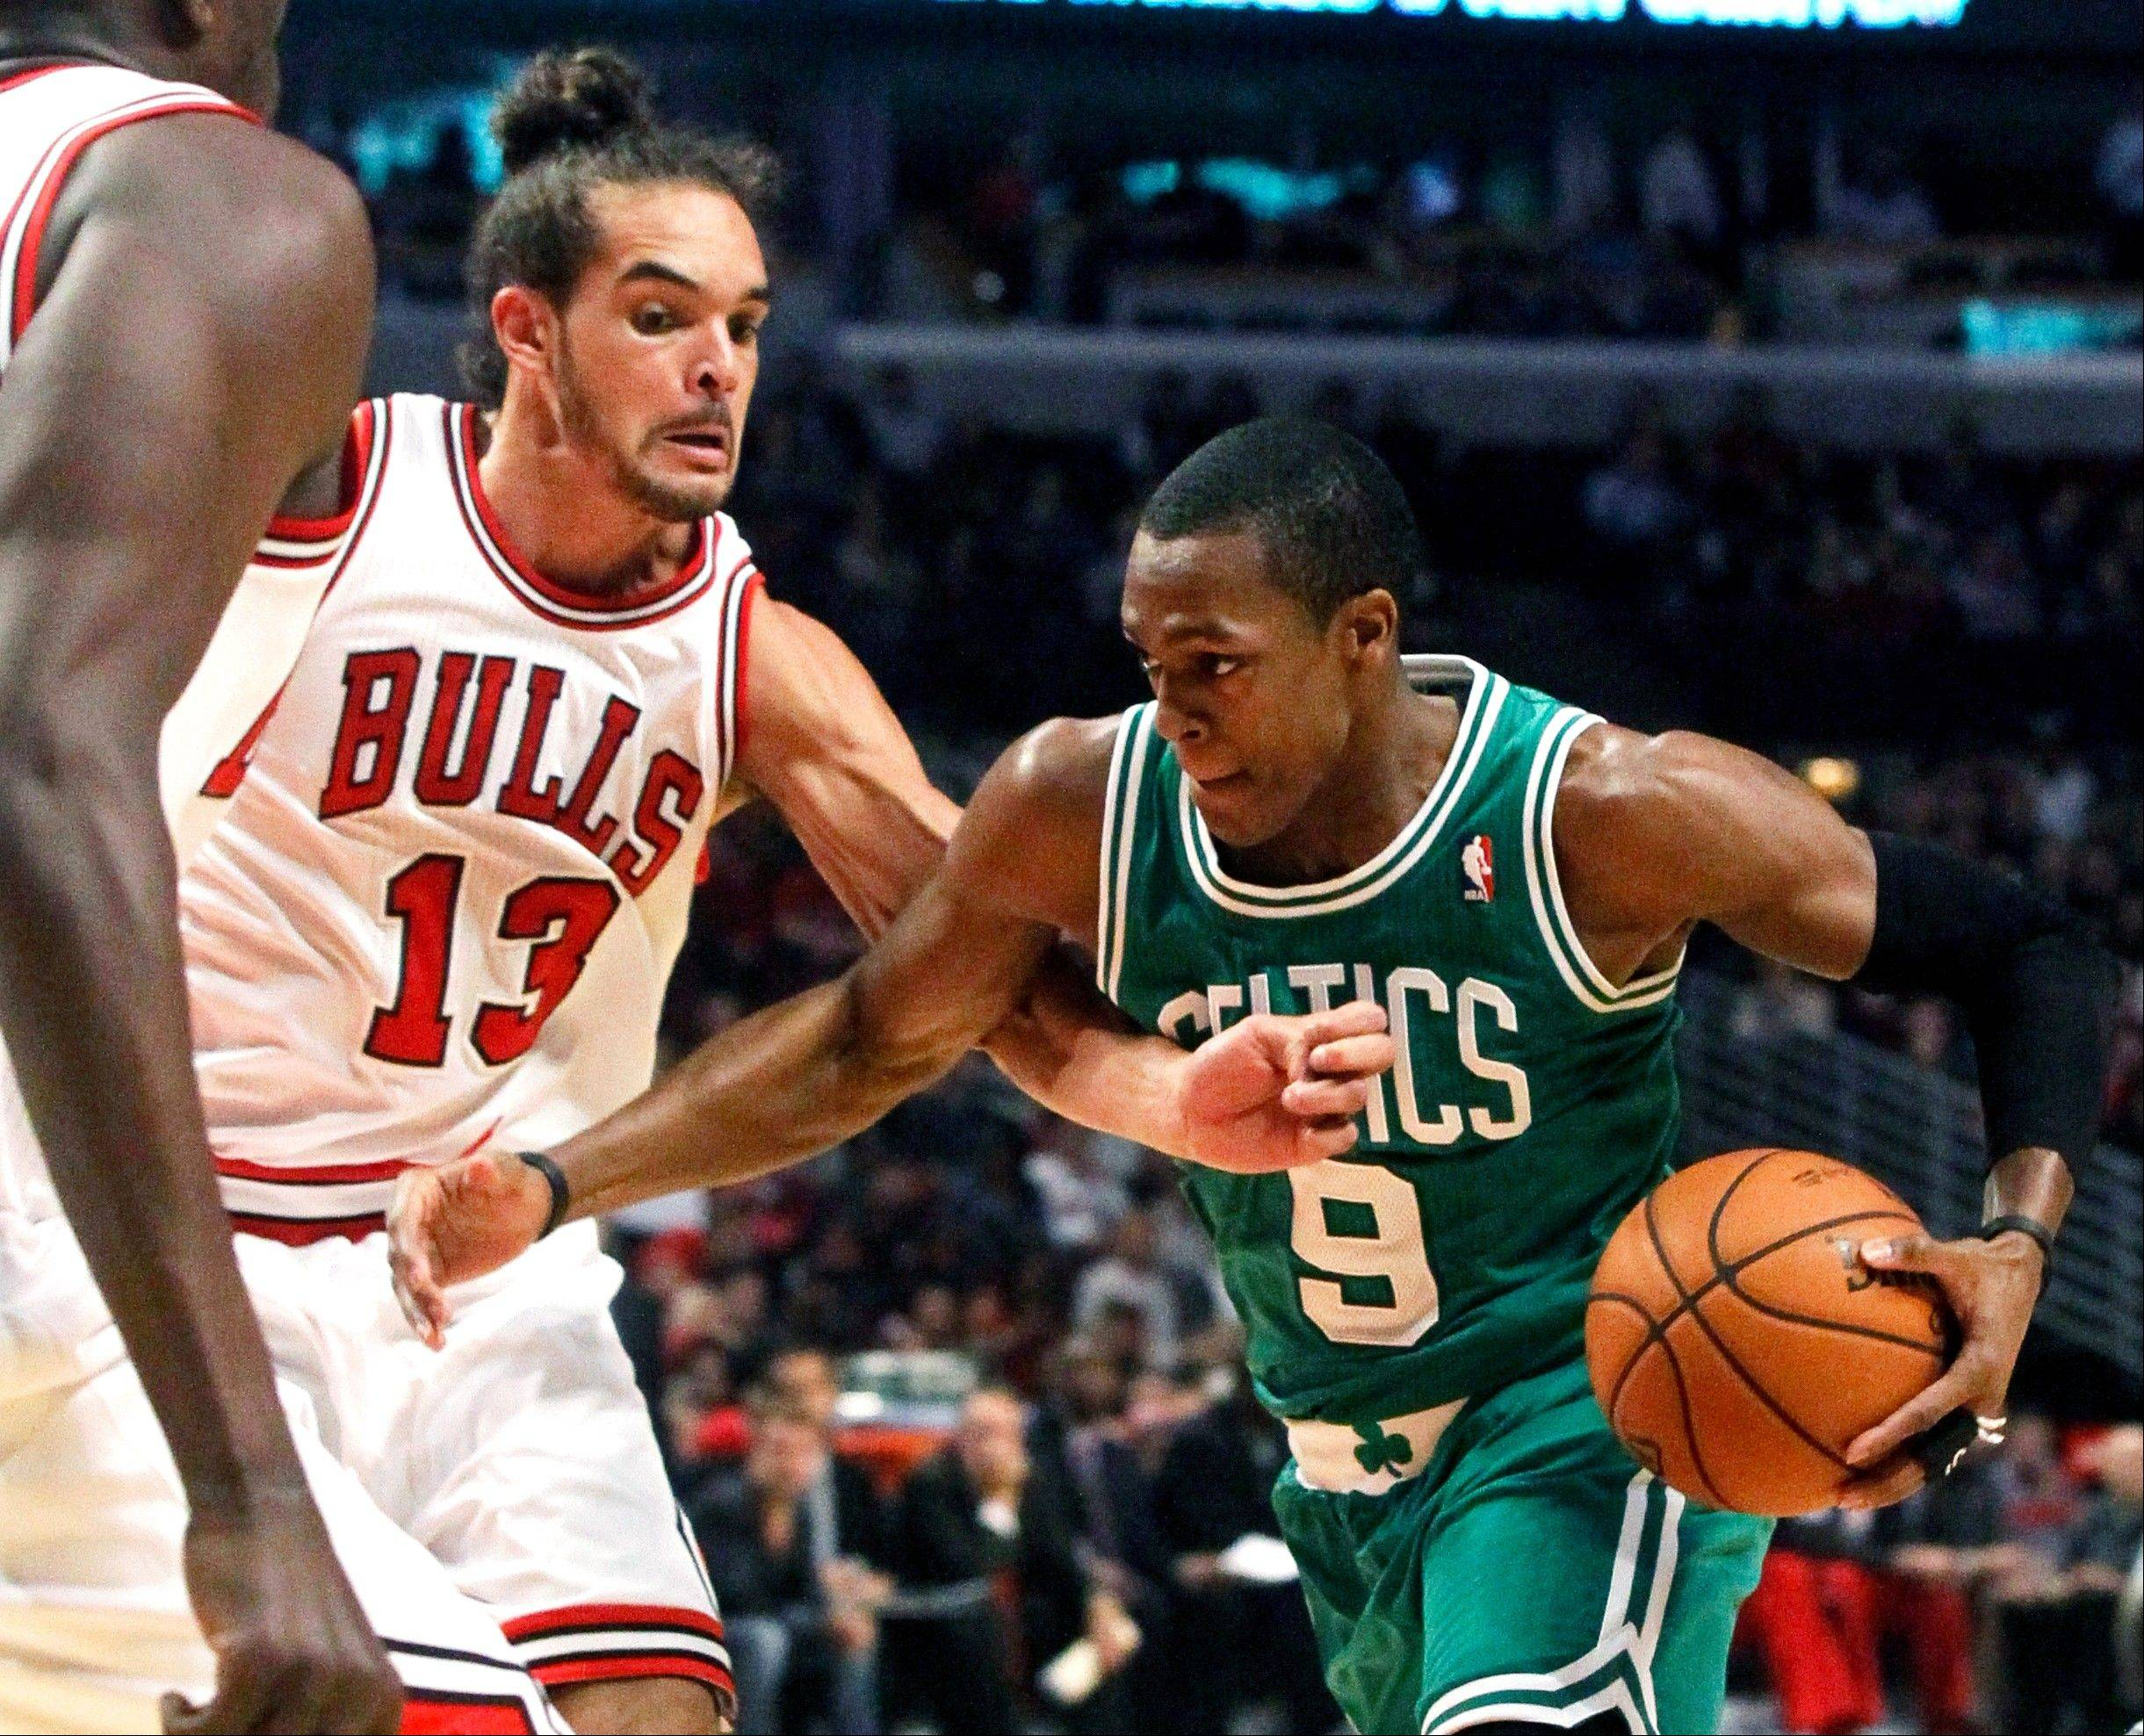 Boston Celtics guard Rajon Rondo drives on Bulls center Joakim Noah during the first half of an NBA basketball game, Monday, Nov. 12, 2012, in Chicago.